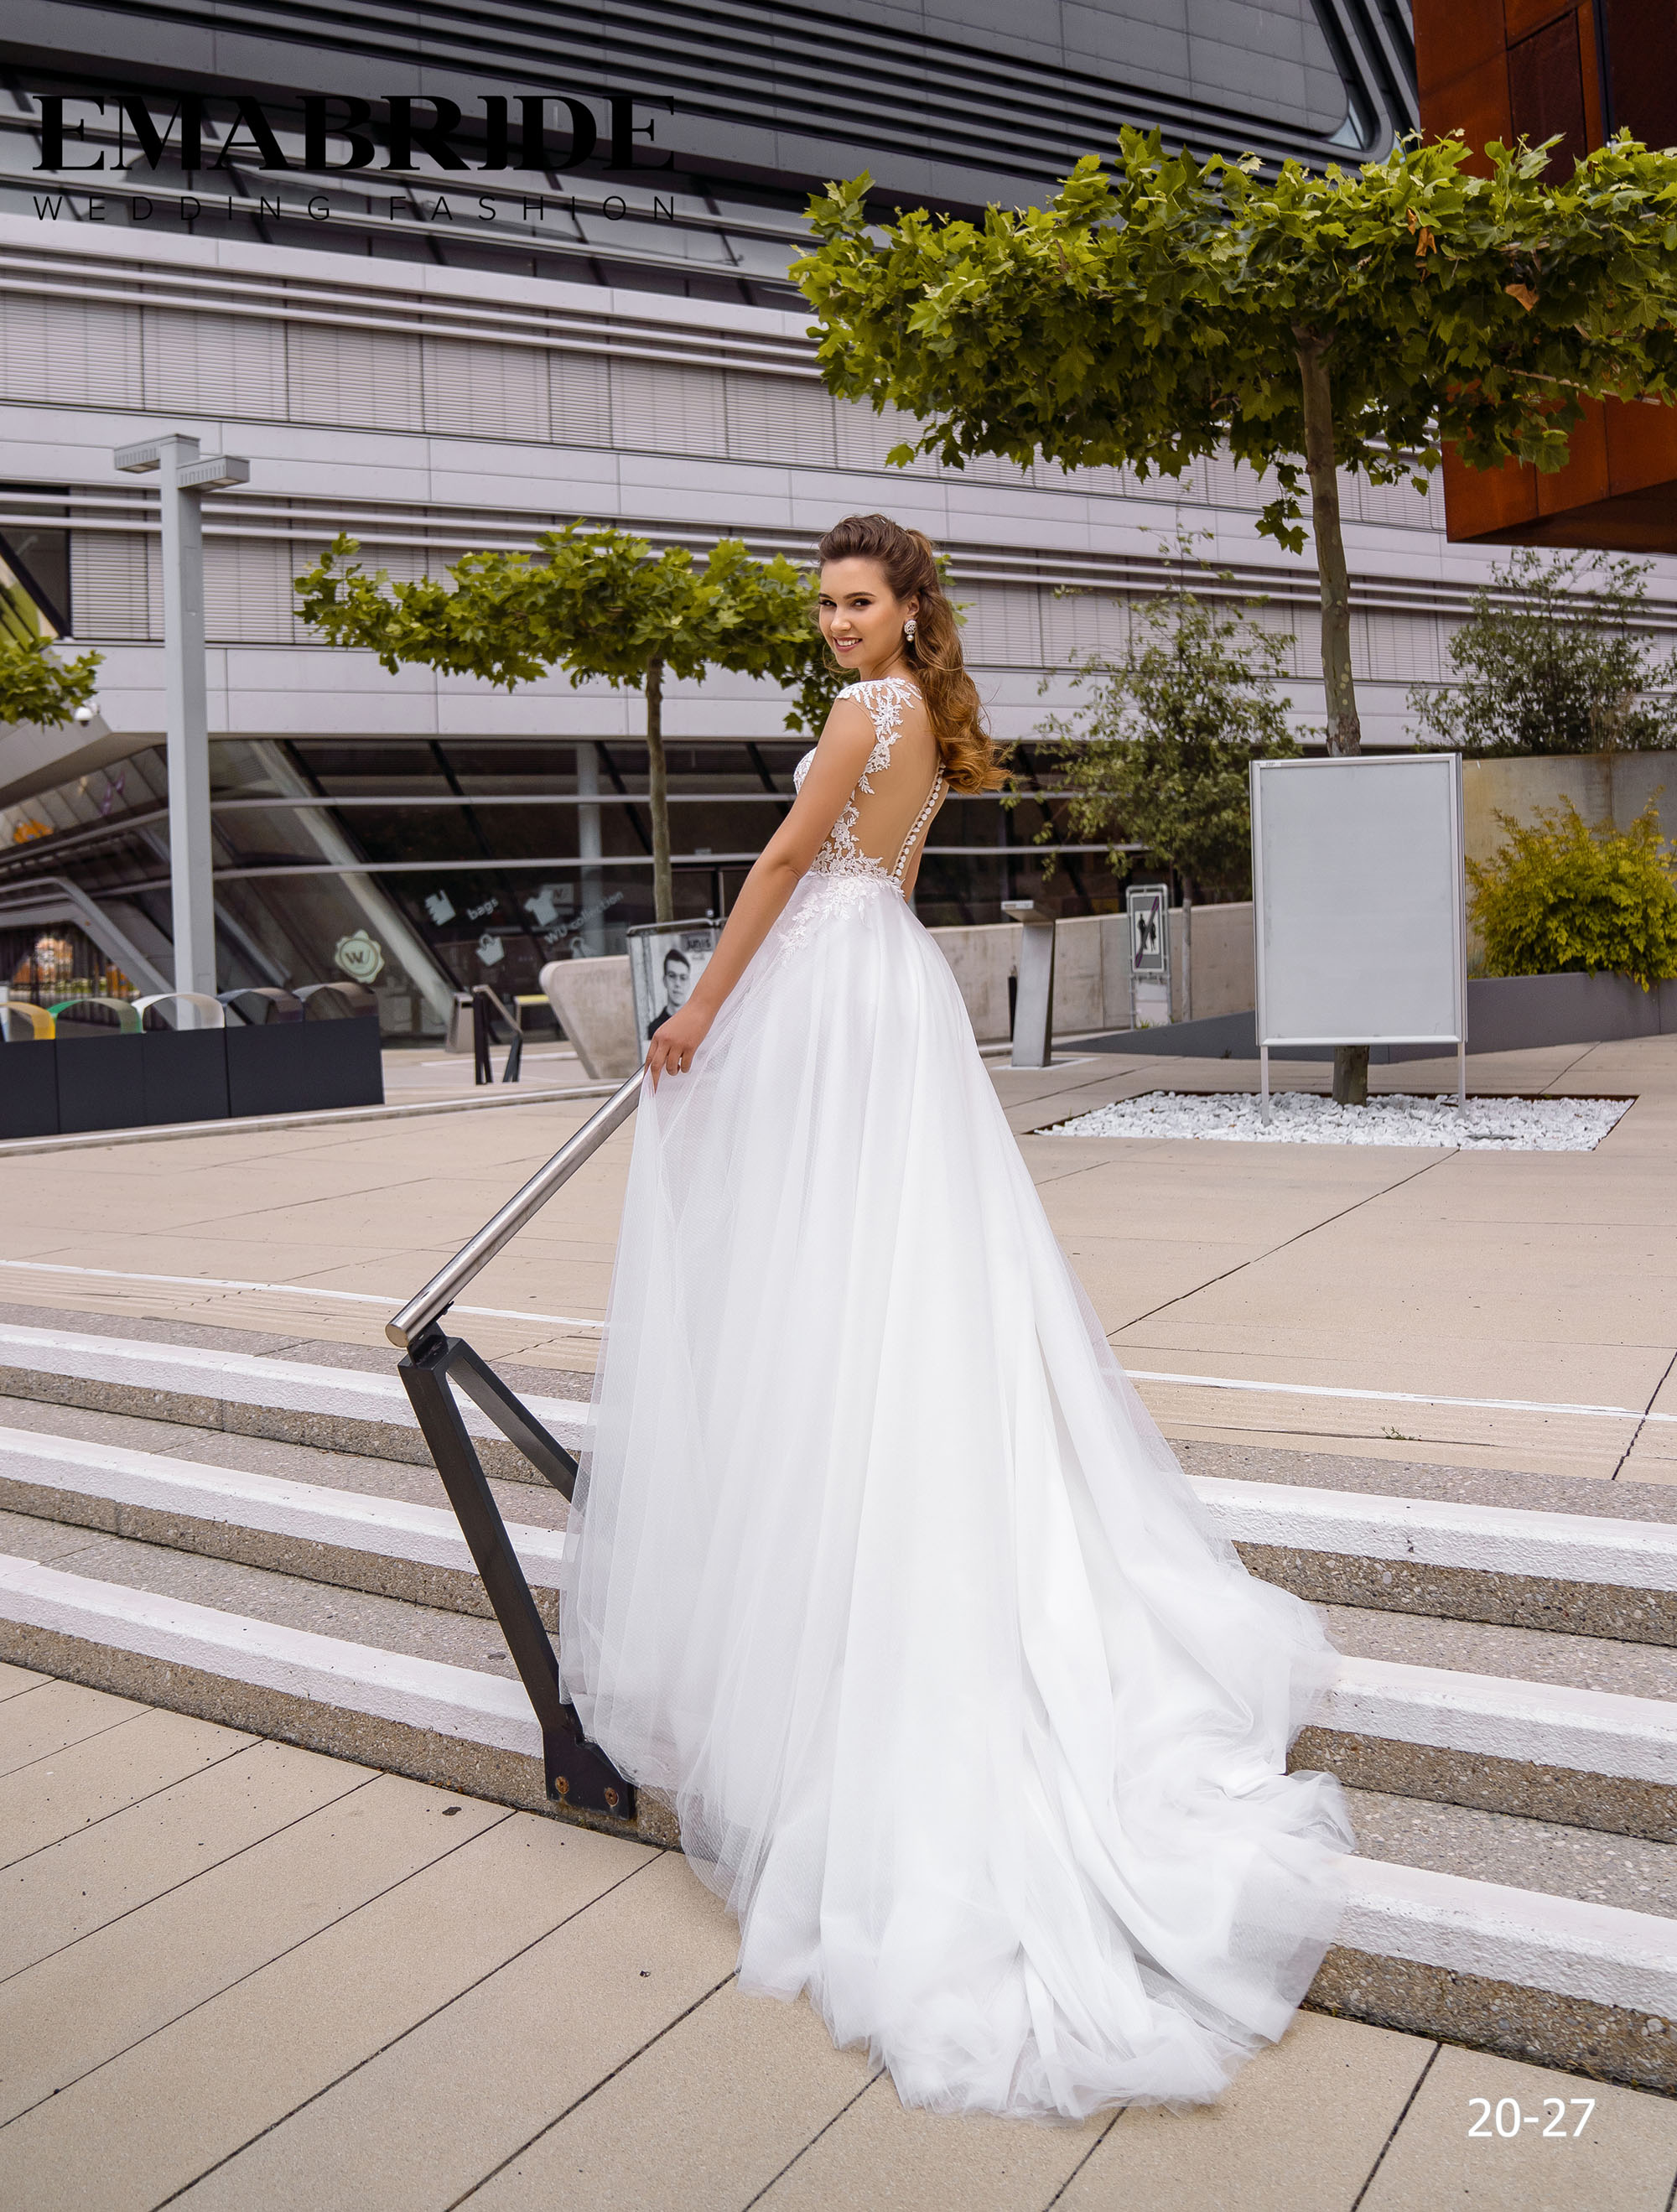 Model 20-27 | Buy wedding dresses wholesale by the ukrainian manufacturer Emabride-2